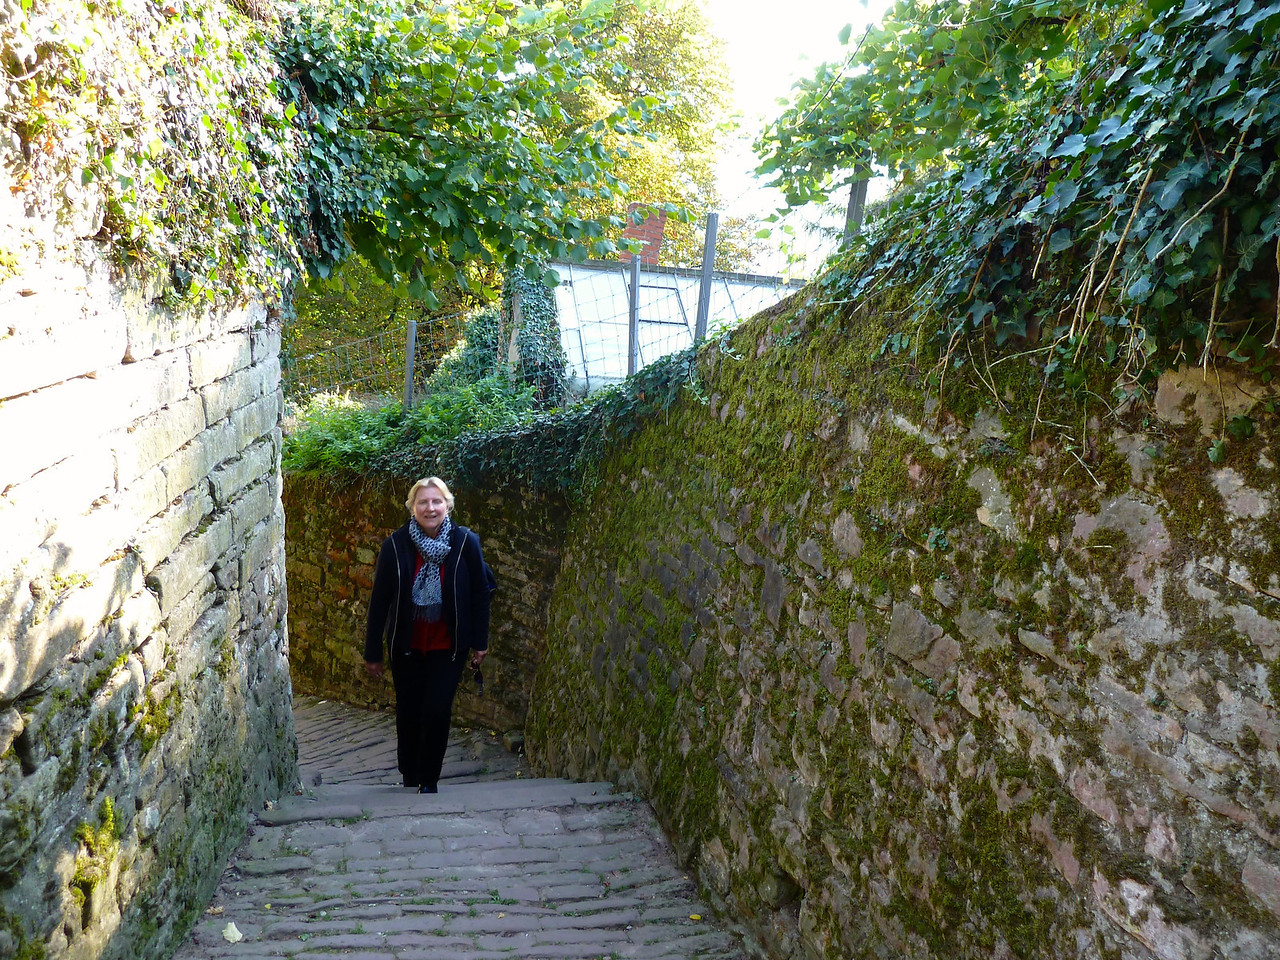 """Another huff 'n puff up to the famous """"Philosophenweg"""" (philosophers' trail) where famous German philosophers walked and talked in the past when there was still time for such things!!"""